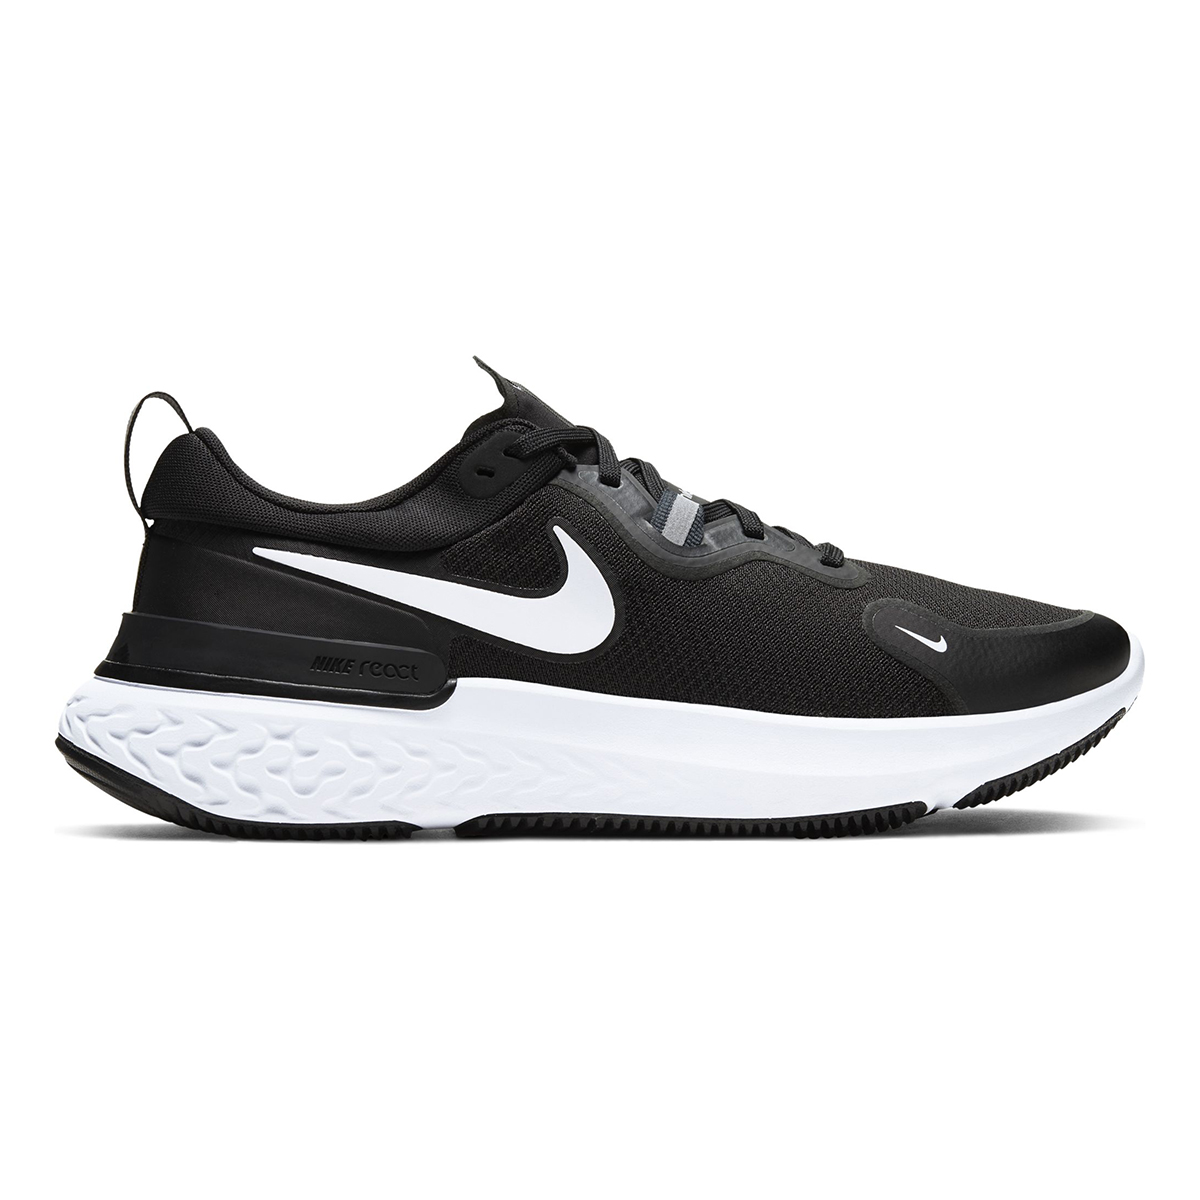 Men's Nike React Miler Running Shoe - Color: Black/Dark Grey/Anthracite/White (Regular Width) - Size: 6, Black/Dark Grey/Anthracite/White, large, image 1